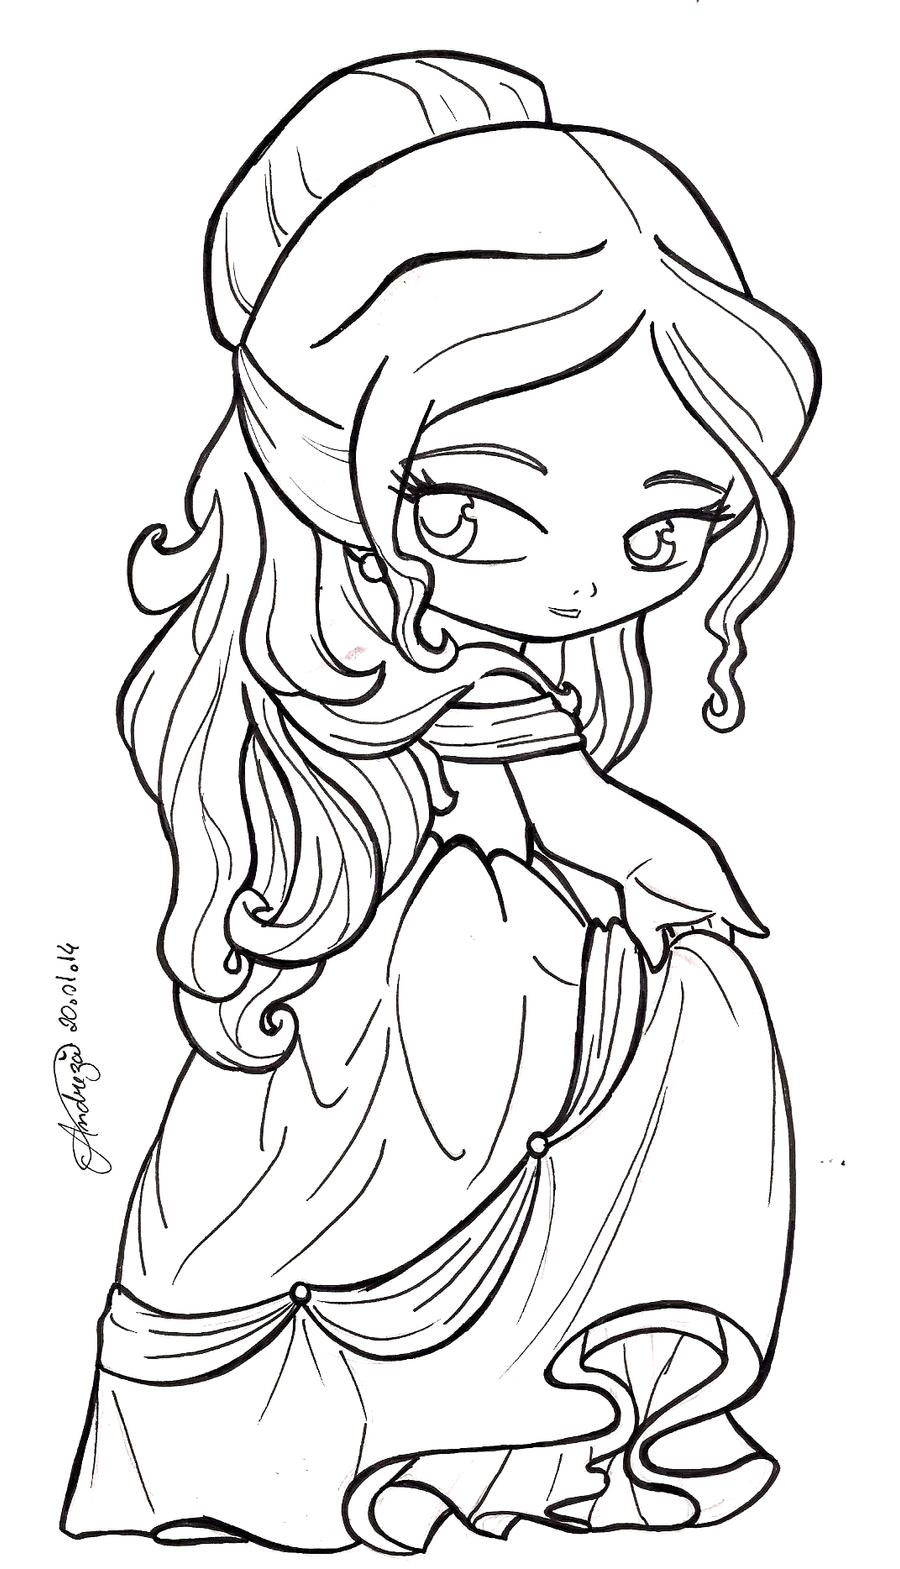 disney chibis coloring pages - photo#16